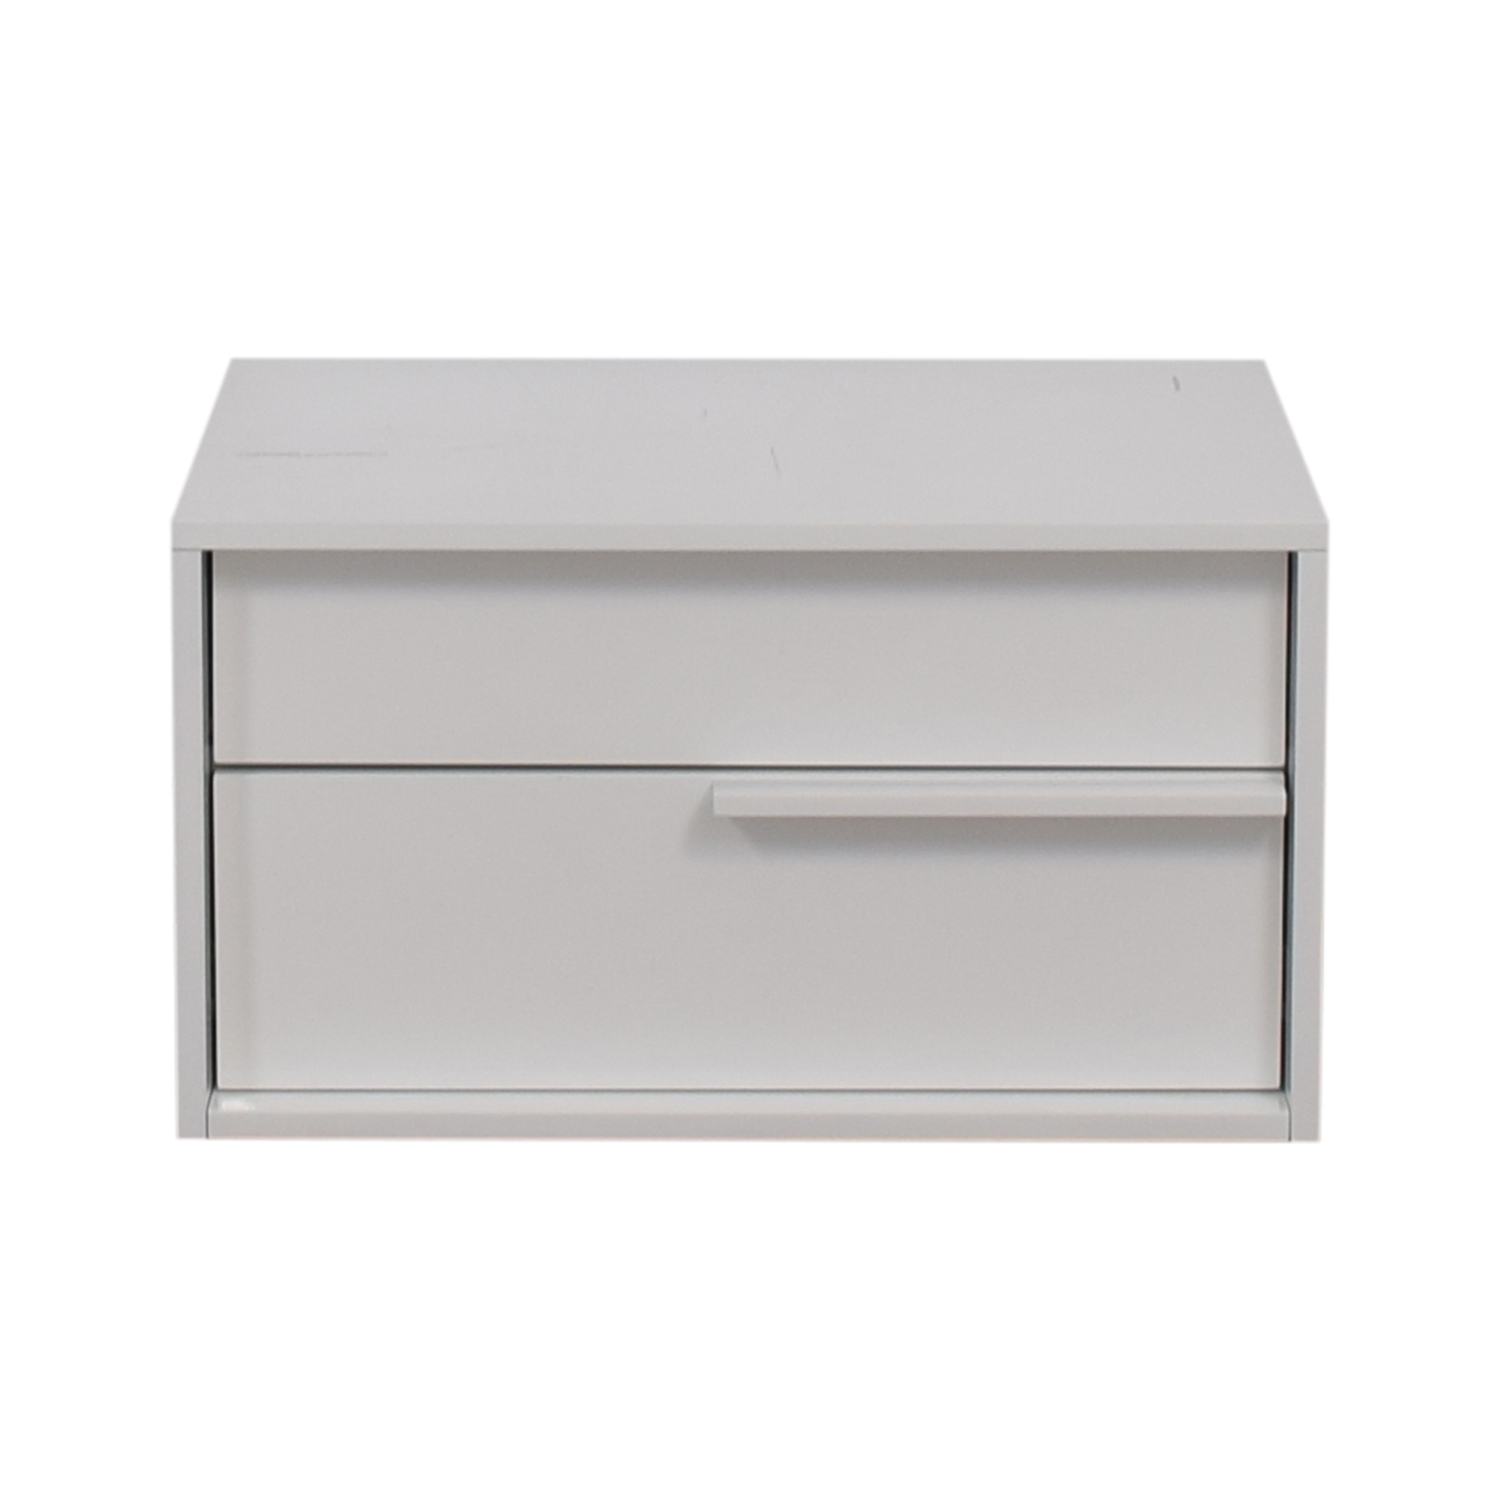 Modloft Modloft White Two-Drawer Night Stand coupon